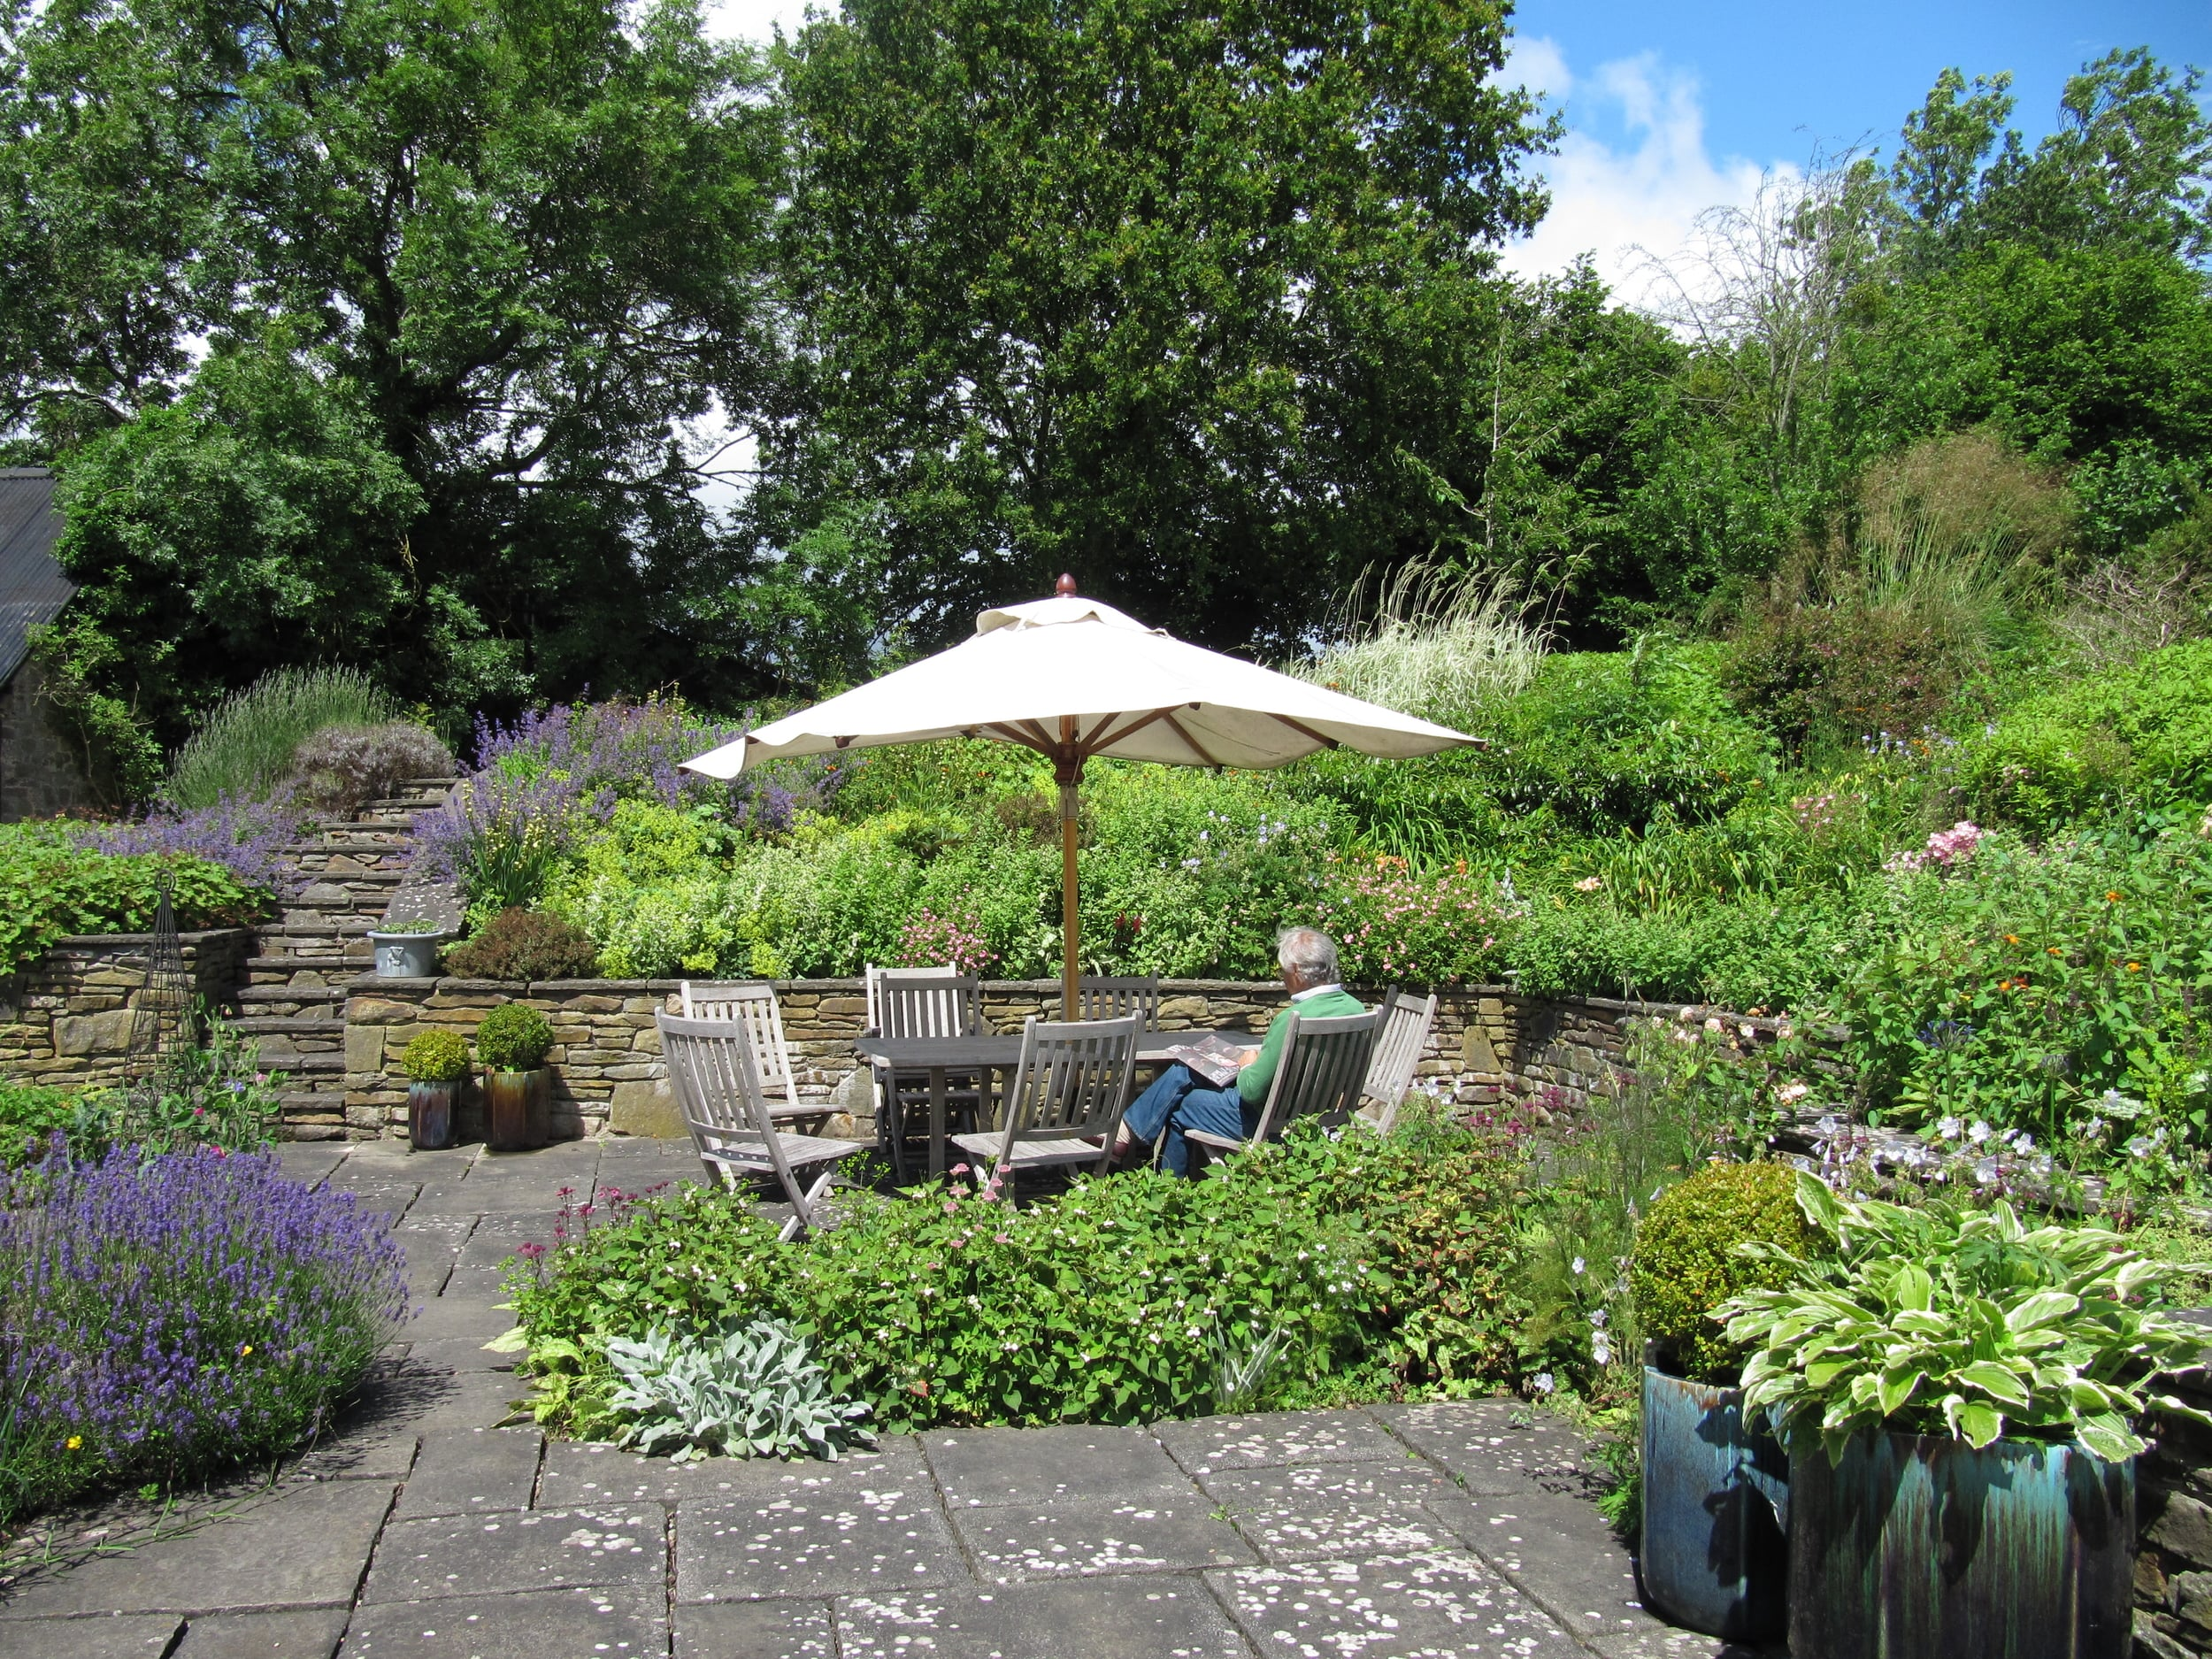 A sunny terrace surrounded by scented herbs and hardy geraniums makes a relaxing space to dine or just to take the air.